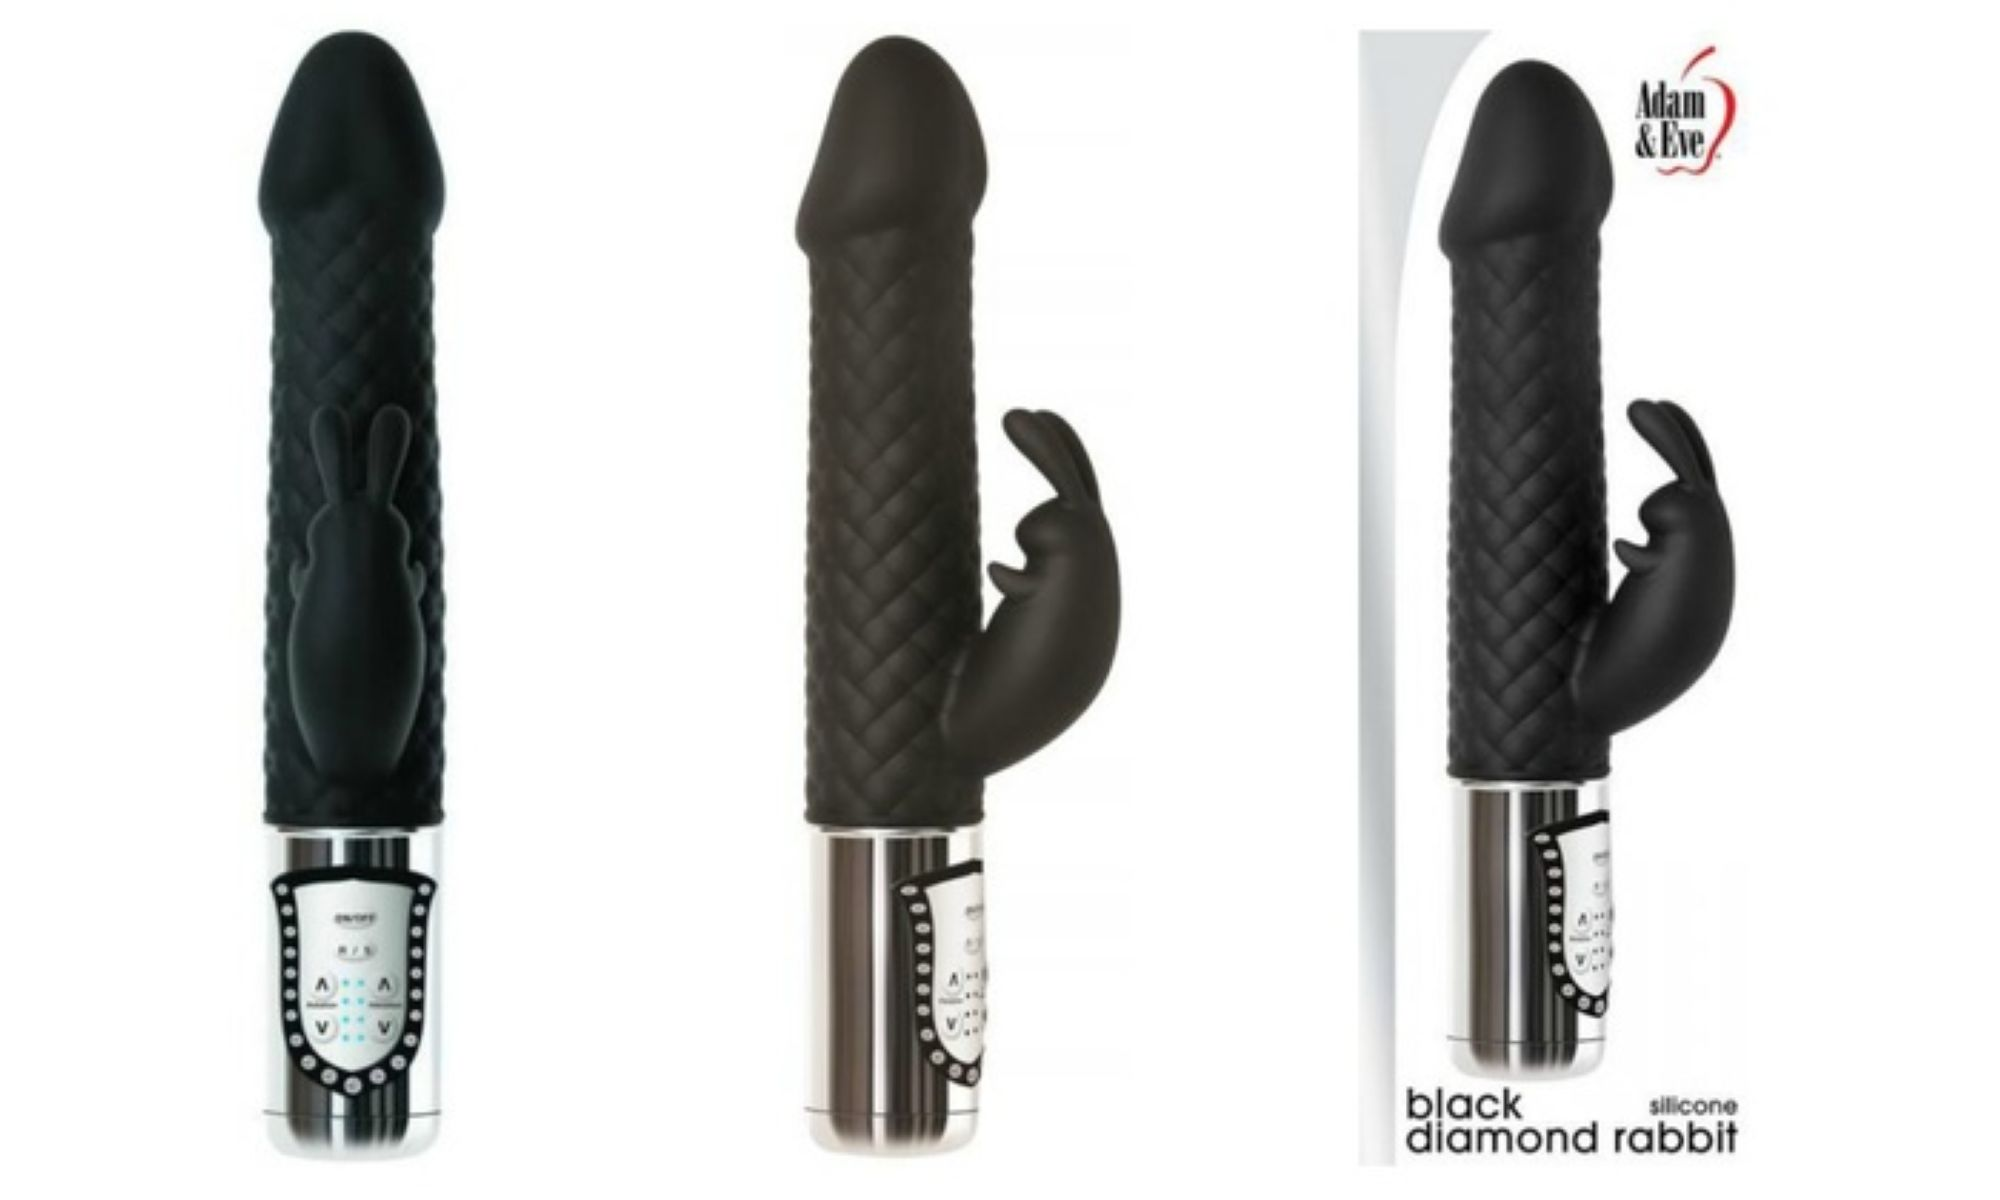 03-Black-Diamond-Rabbit-Vibrator_1